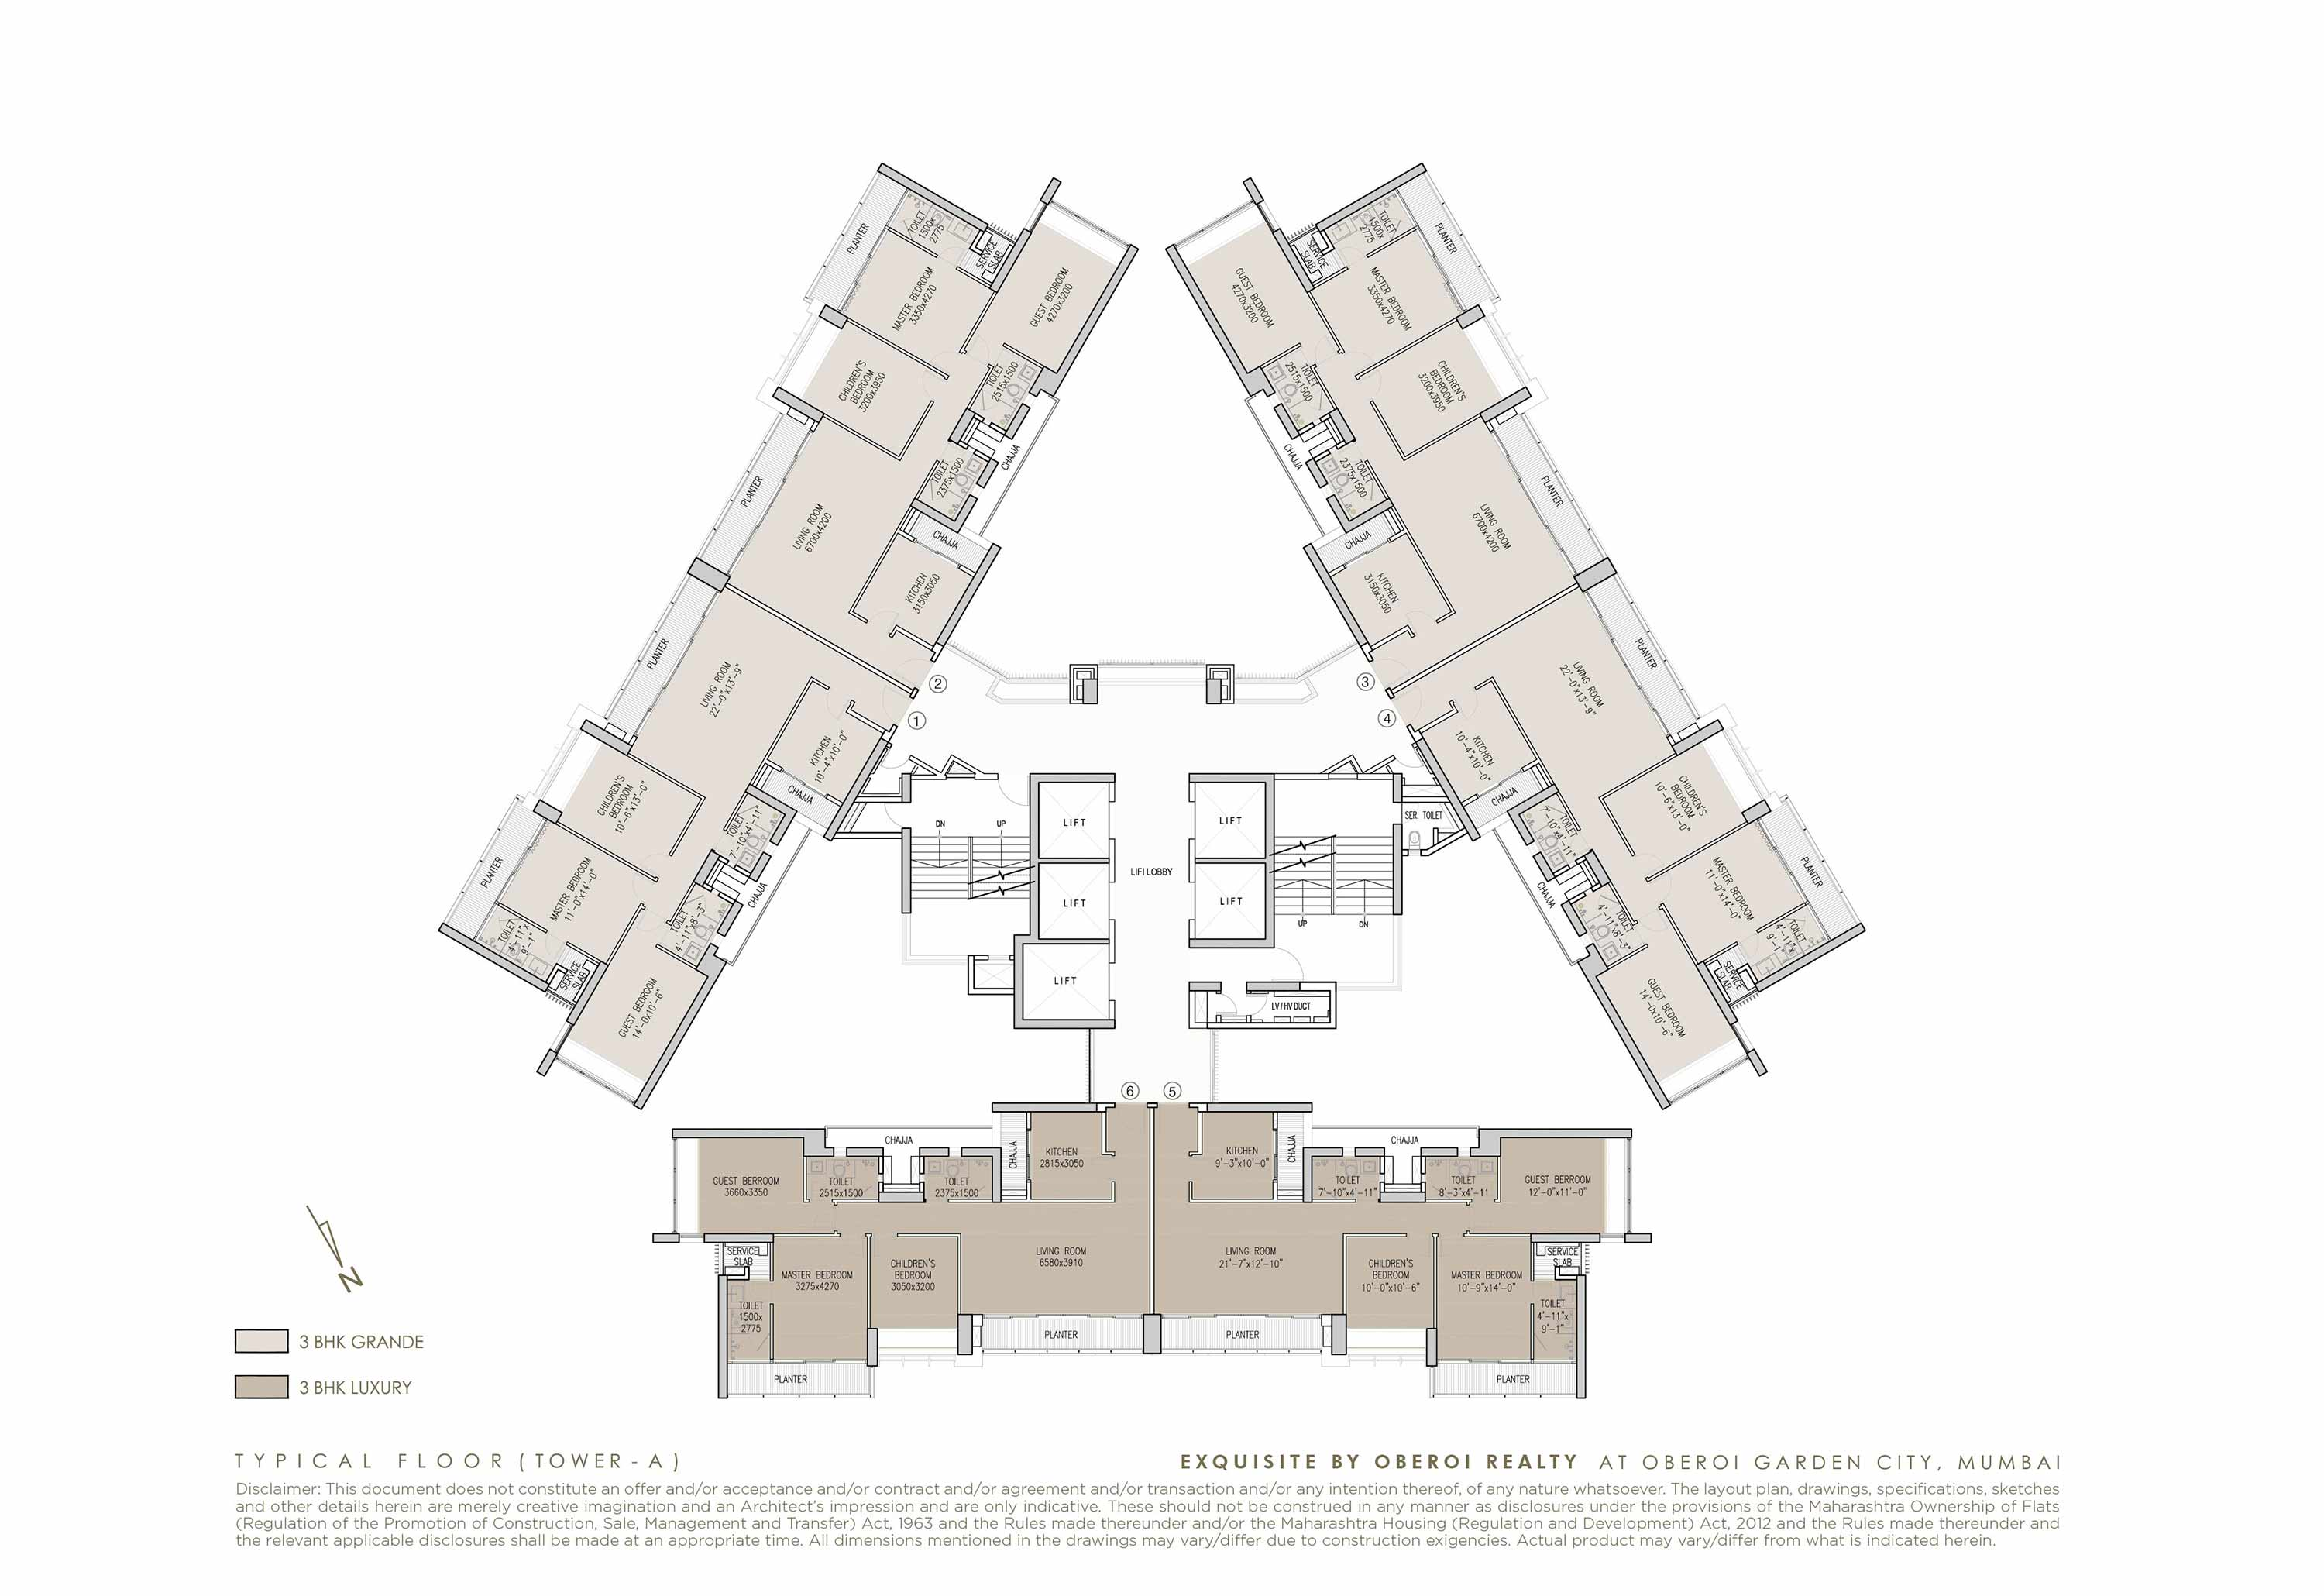 Exquisite: Luxury Flats: Goregaon (E) Mumbai: Floor Plan: 1